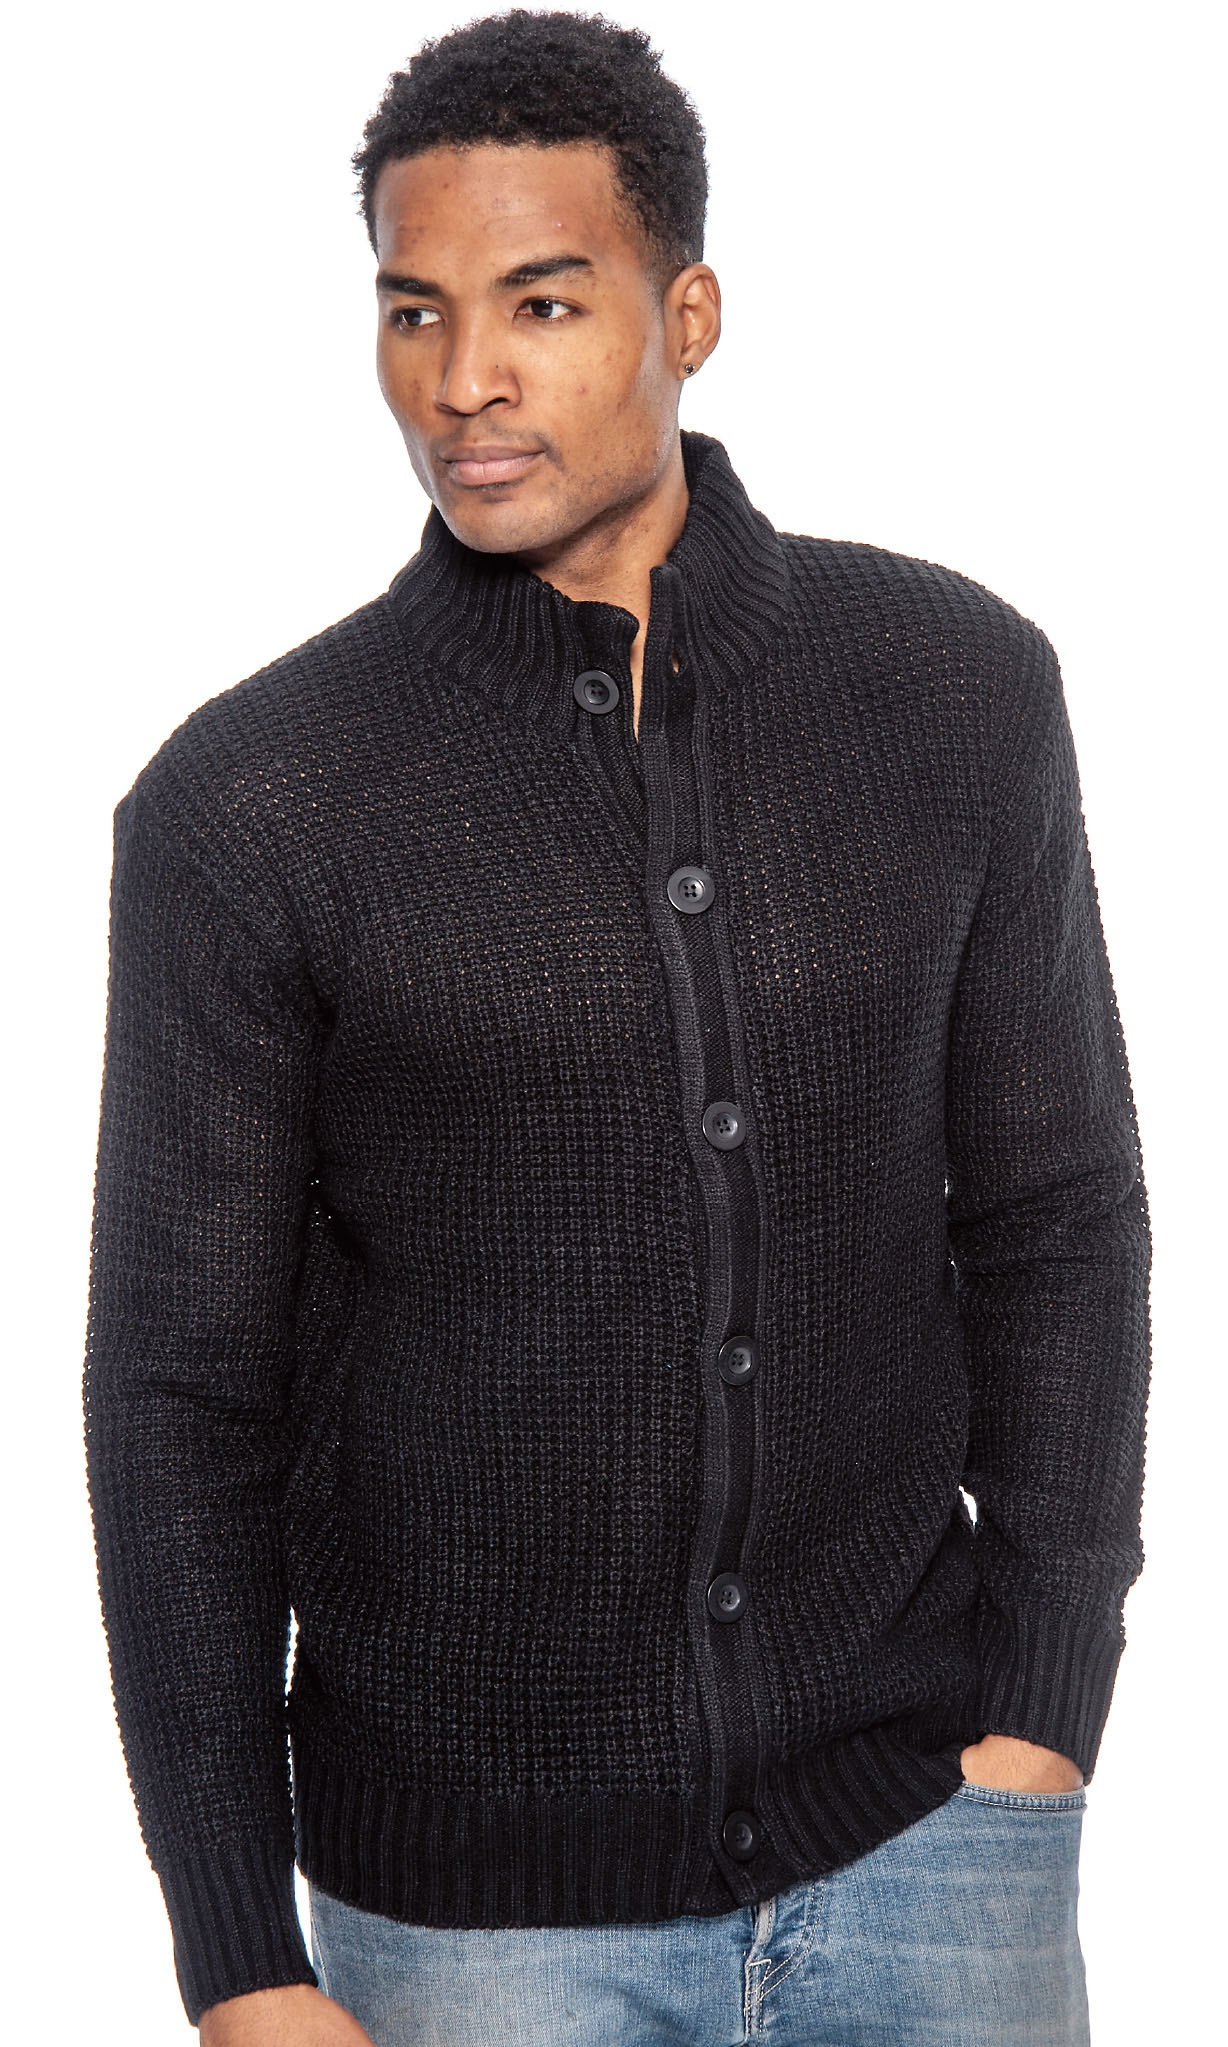 TR Men/'s Knit Placket Sweater by 9 Crowns Essentials